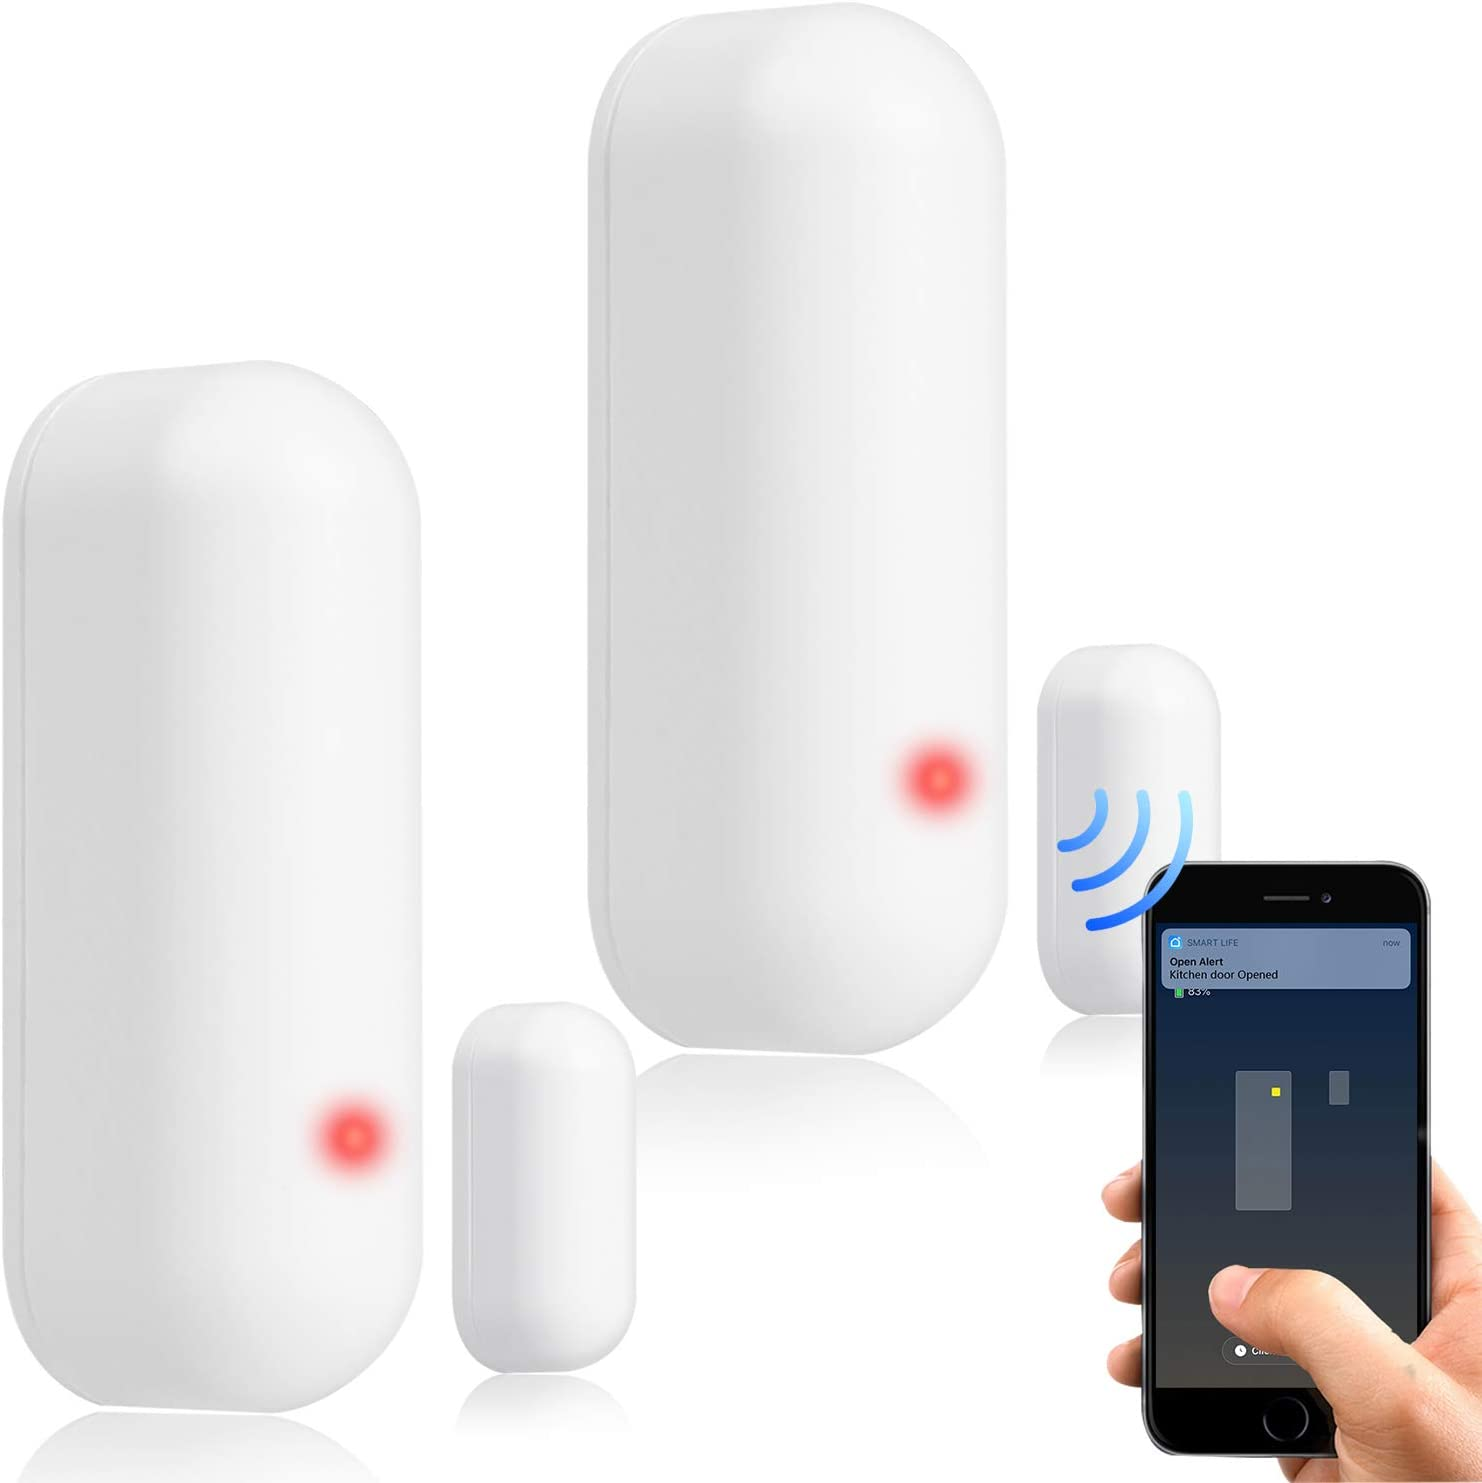 WiFi Smart Door Sensor Chime Window Entry Alarm, APP Control Wireless Security System with Push Notification, Universal Installation,Compatible with Amazon Alexa, Google Home, IFTTT (2 pack)